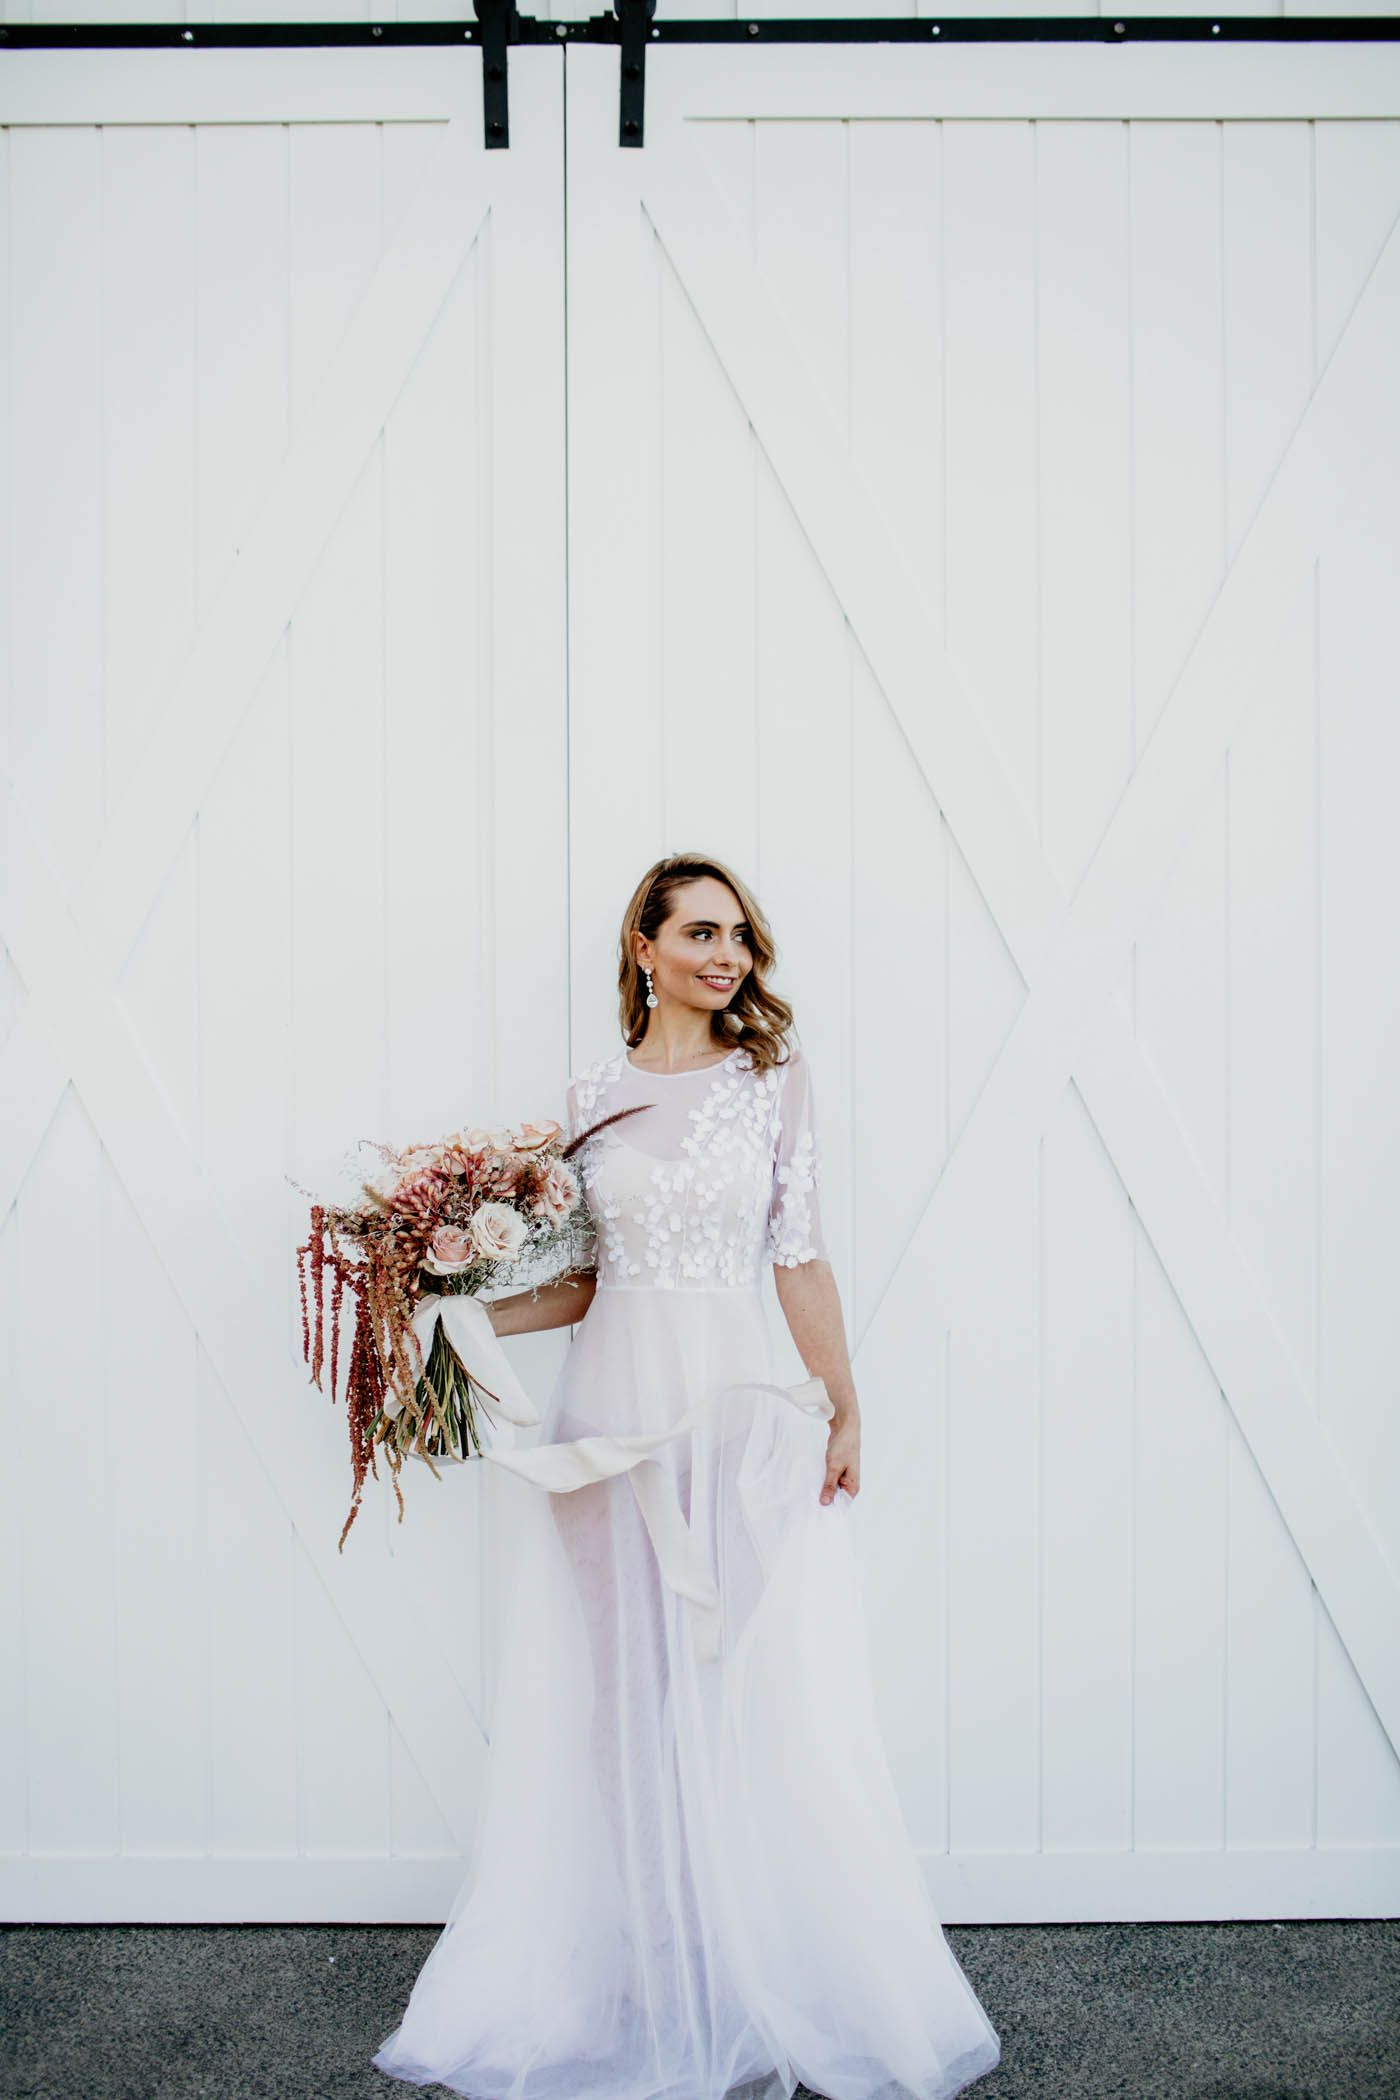 insider tips for styling your wedding like a pro wedding dress